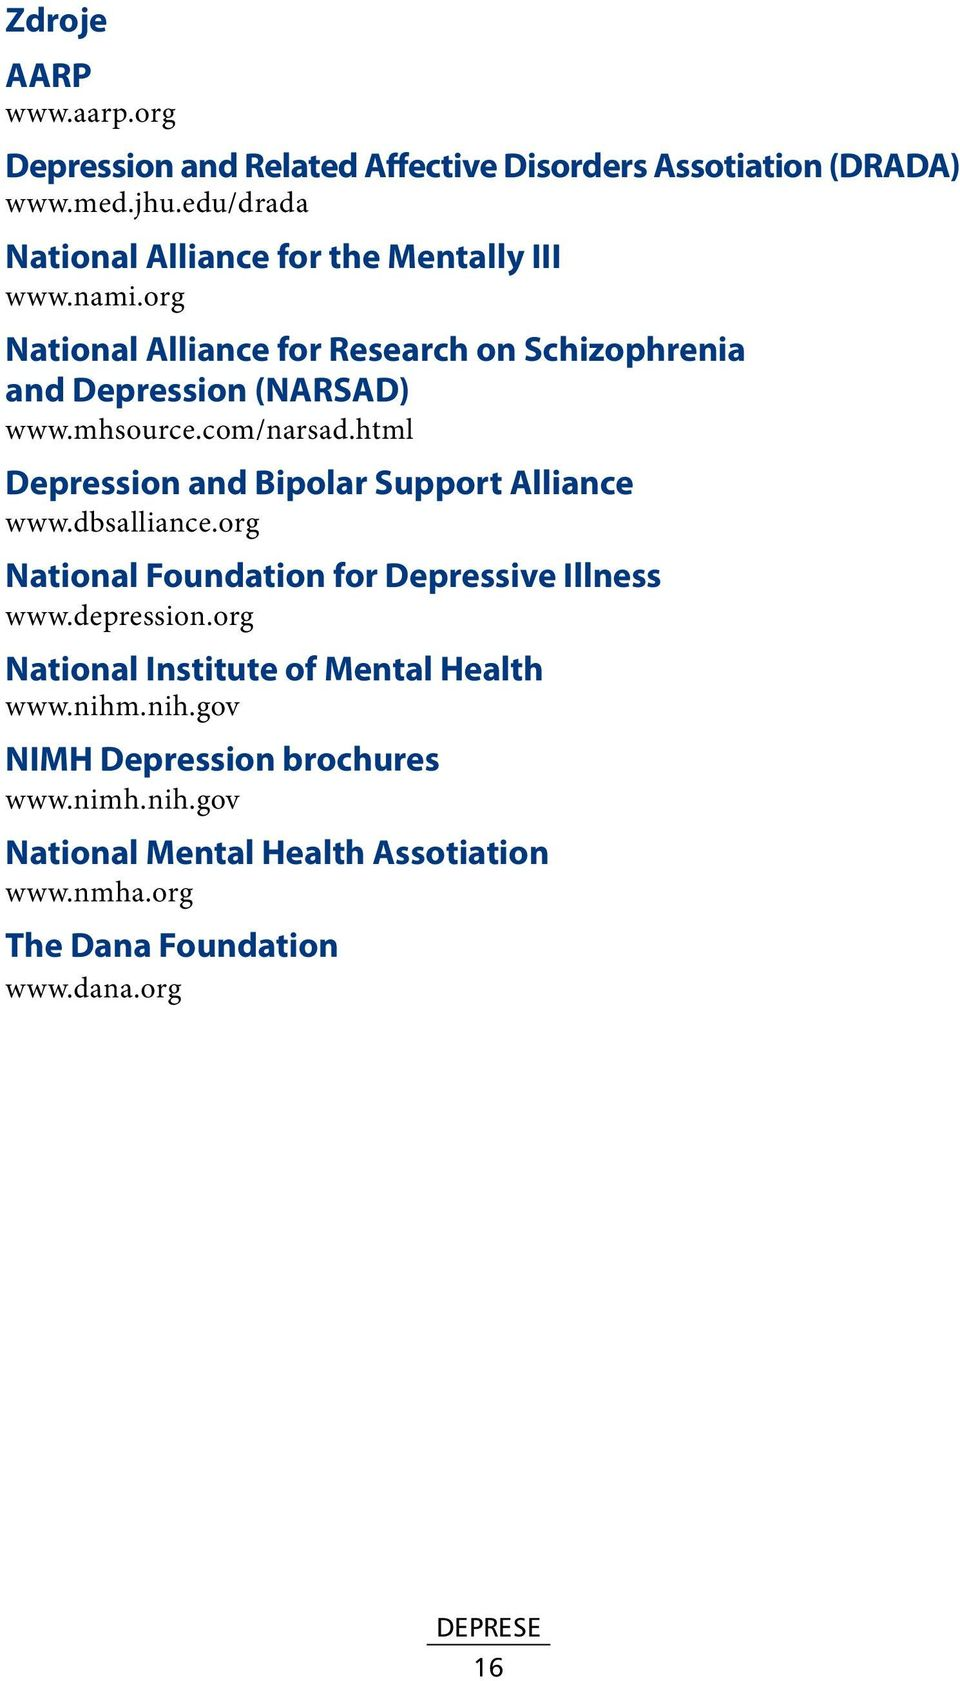 mhsource.com/narsad.html Depression and Bipolar Support Alliance www.dbsalliance.org National Foundation for Depressive Illness www.